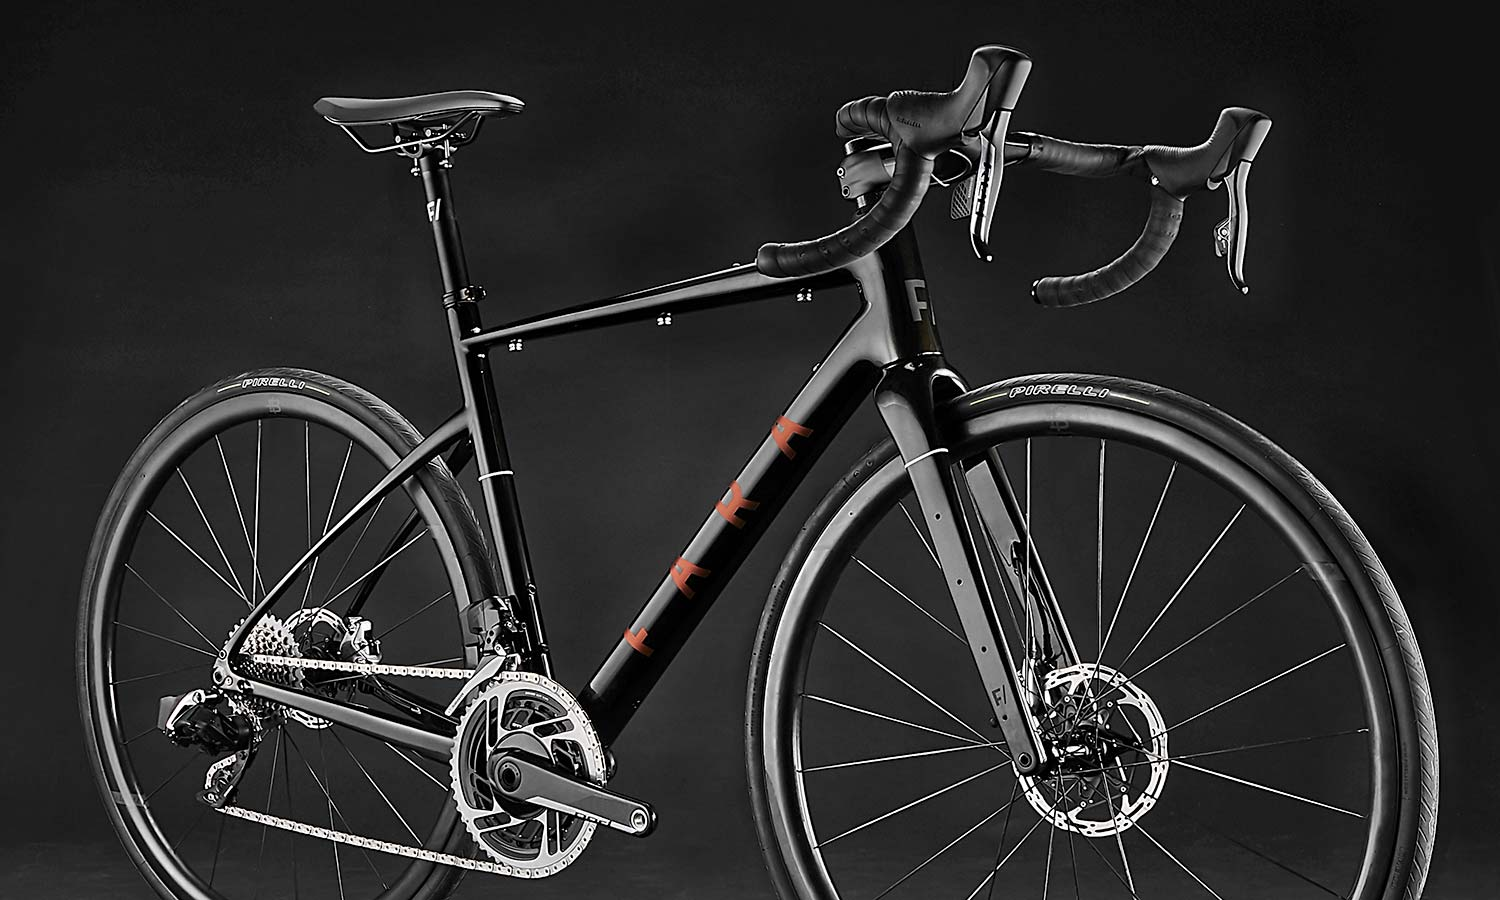 2021 Fara F-AR all-road bike ltd Signature Edition, carbon endurance gravel road bike with integrated bikepacking bags, angled